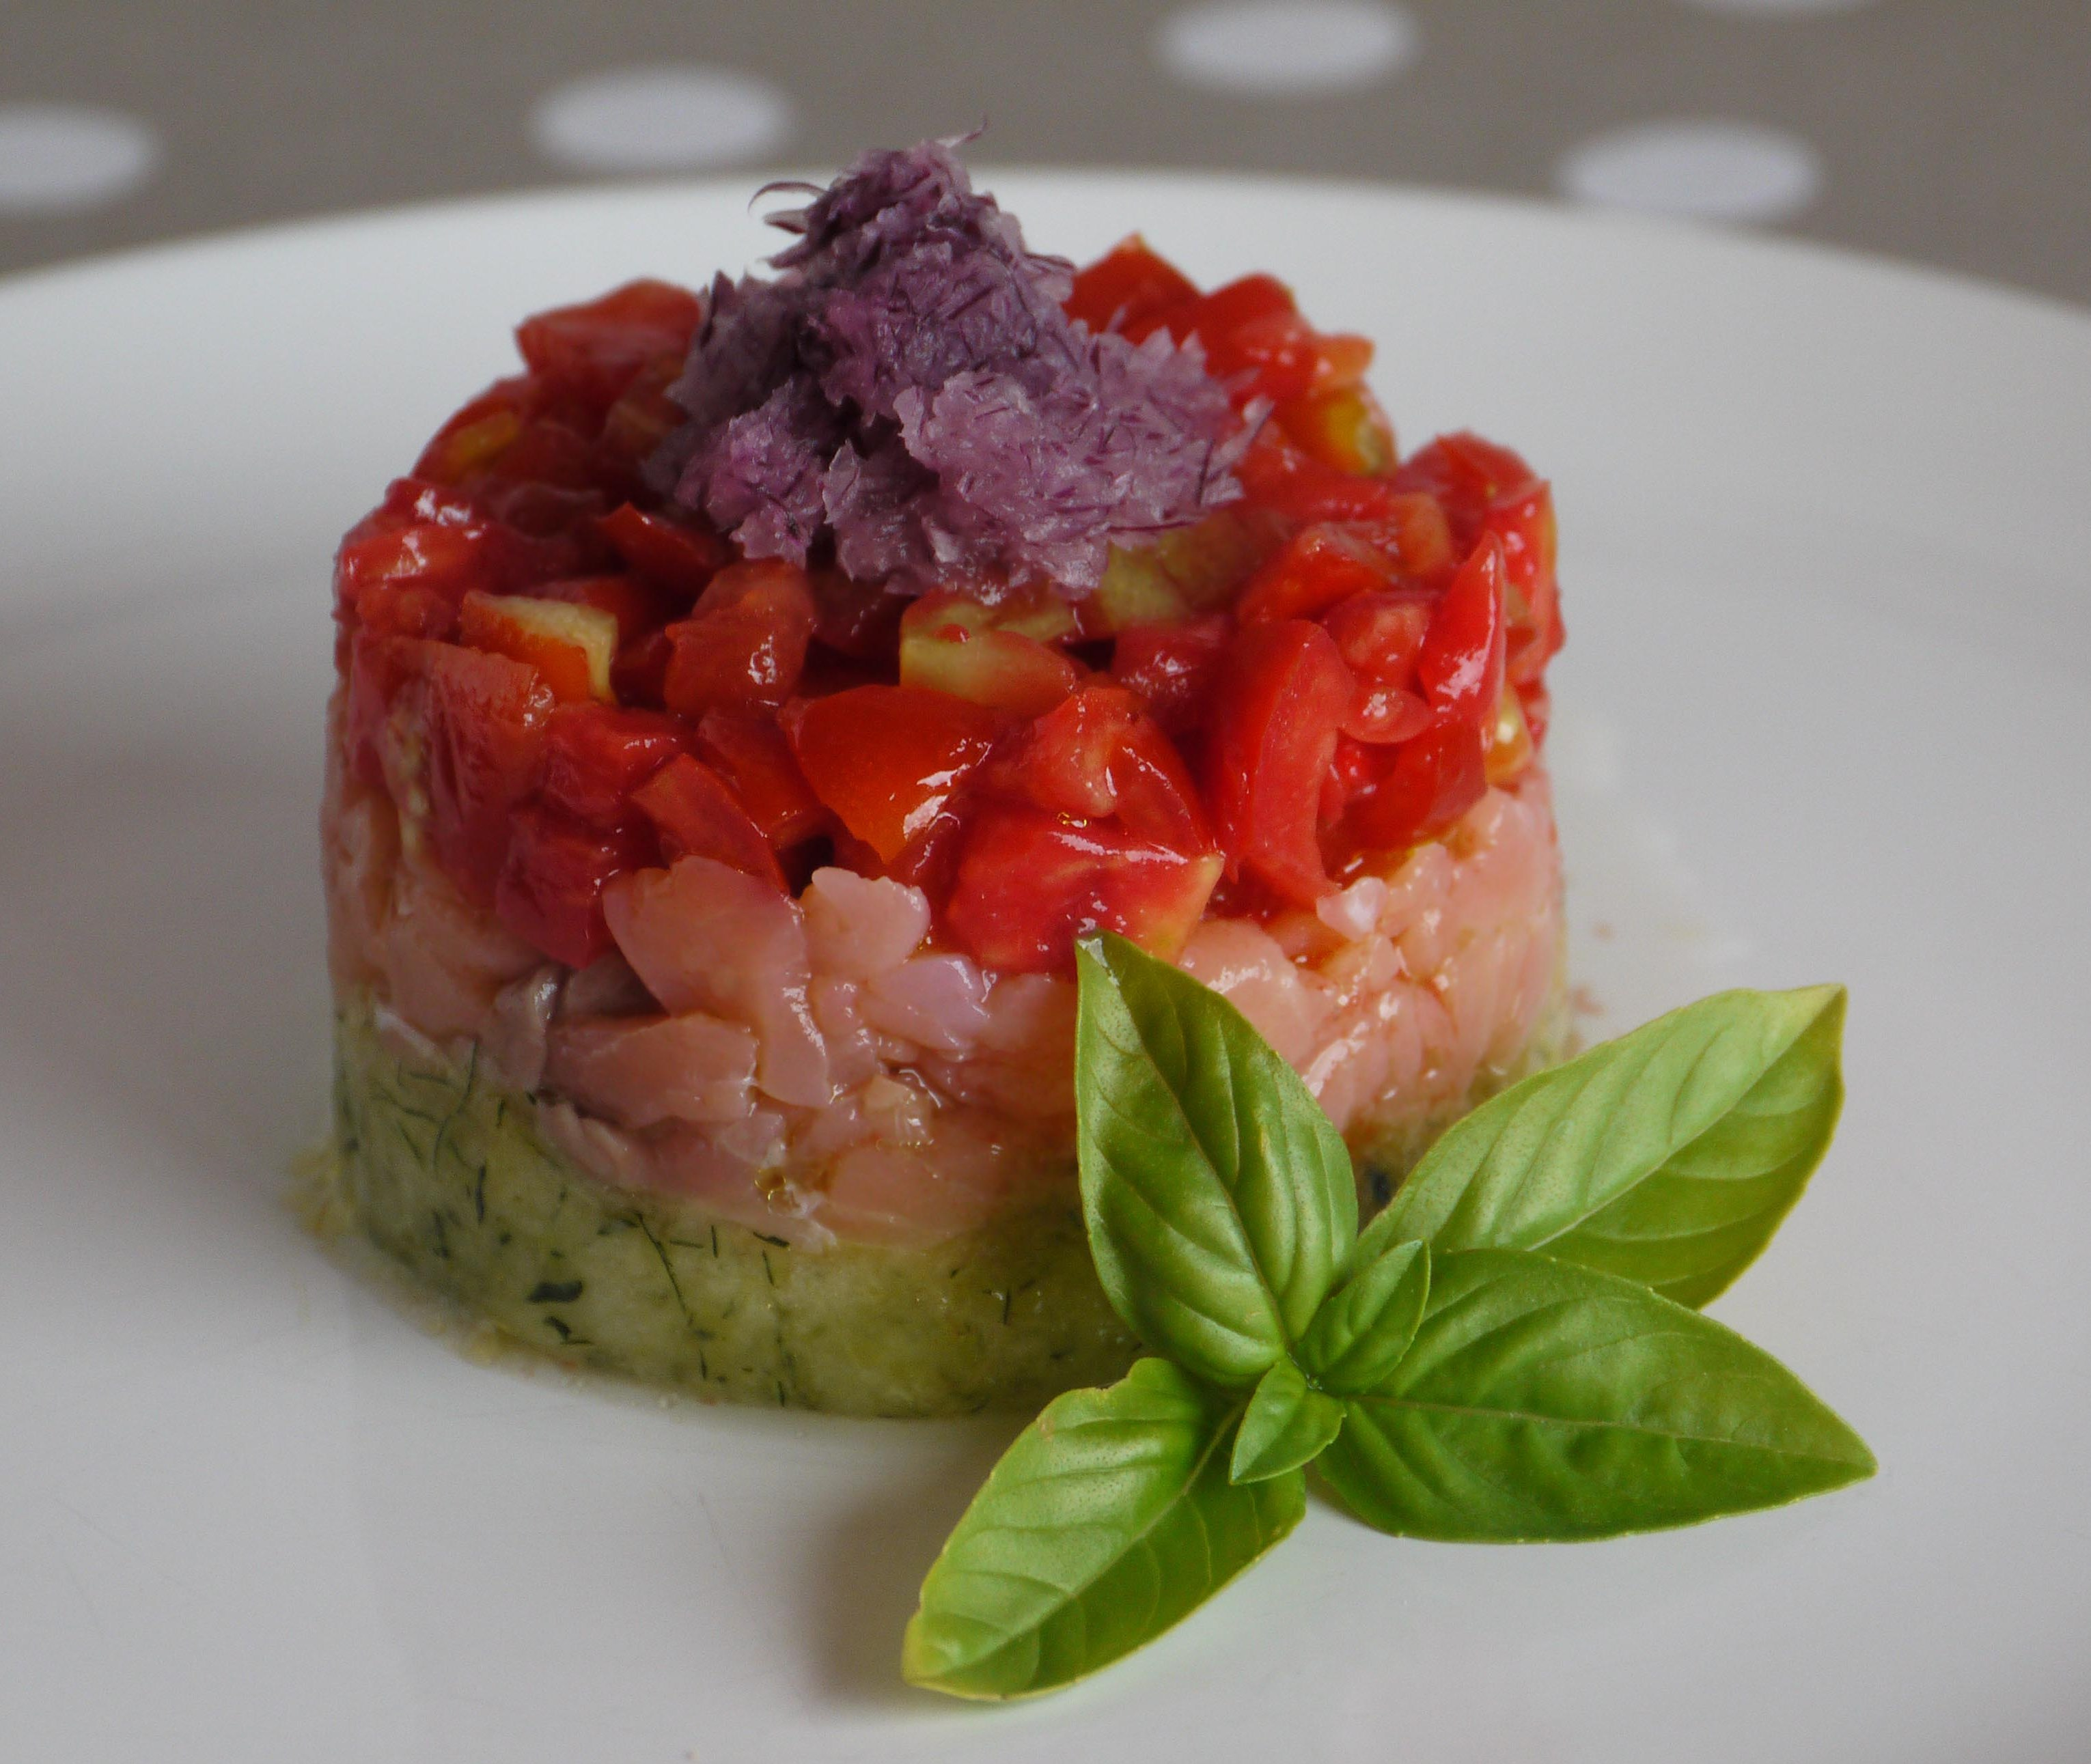 Tartare with avocado and tomatoes